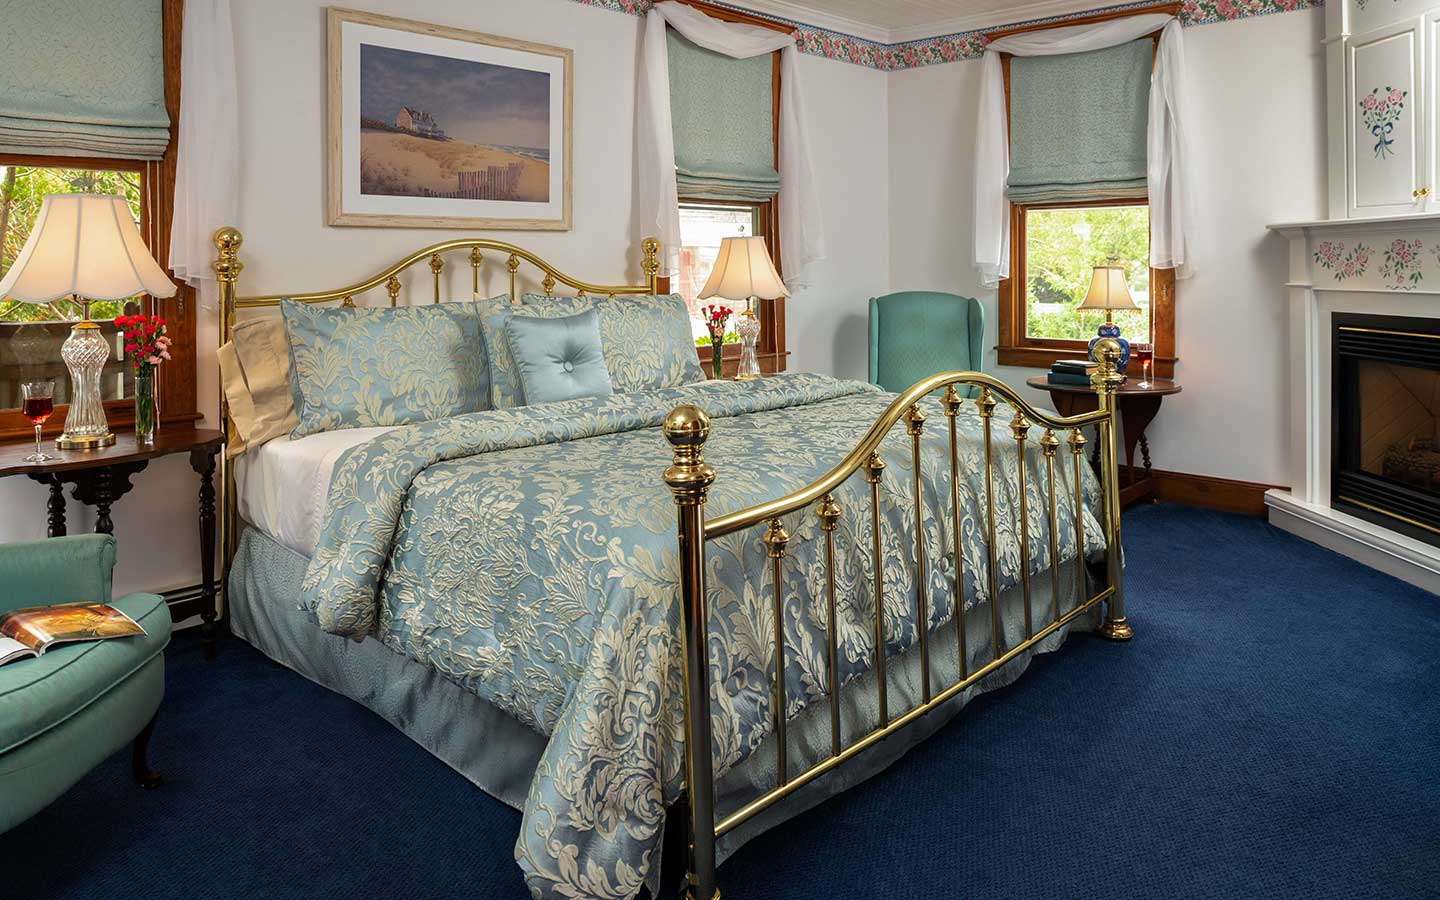 Harriet Beecher Stowe Room at our Cape Cod B&B in Falmouth